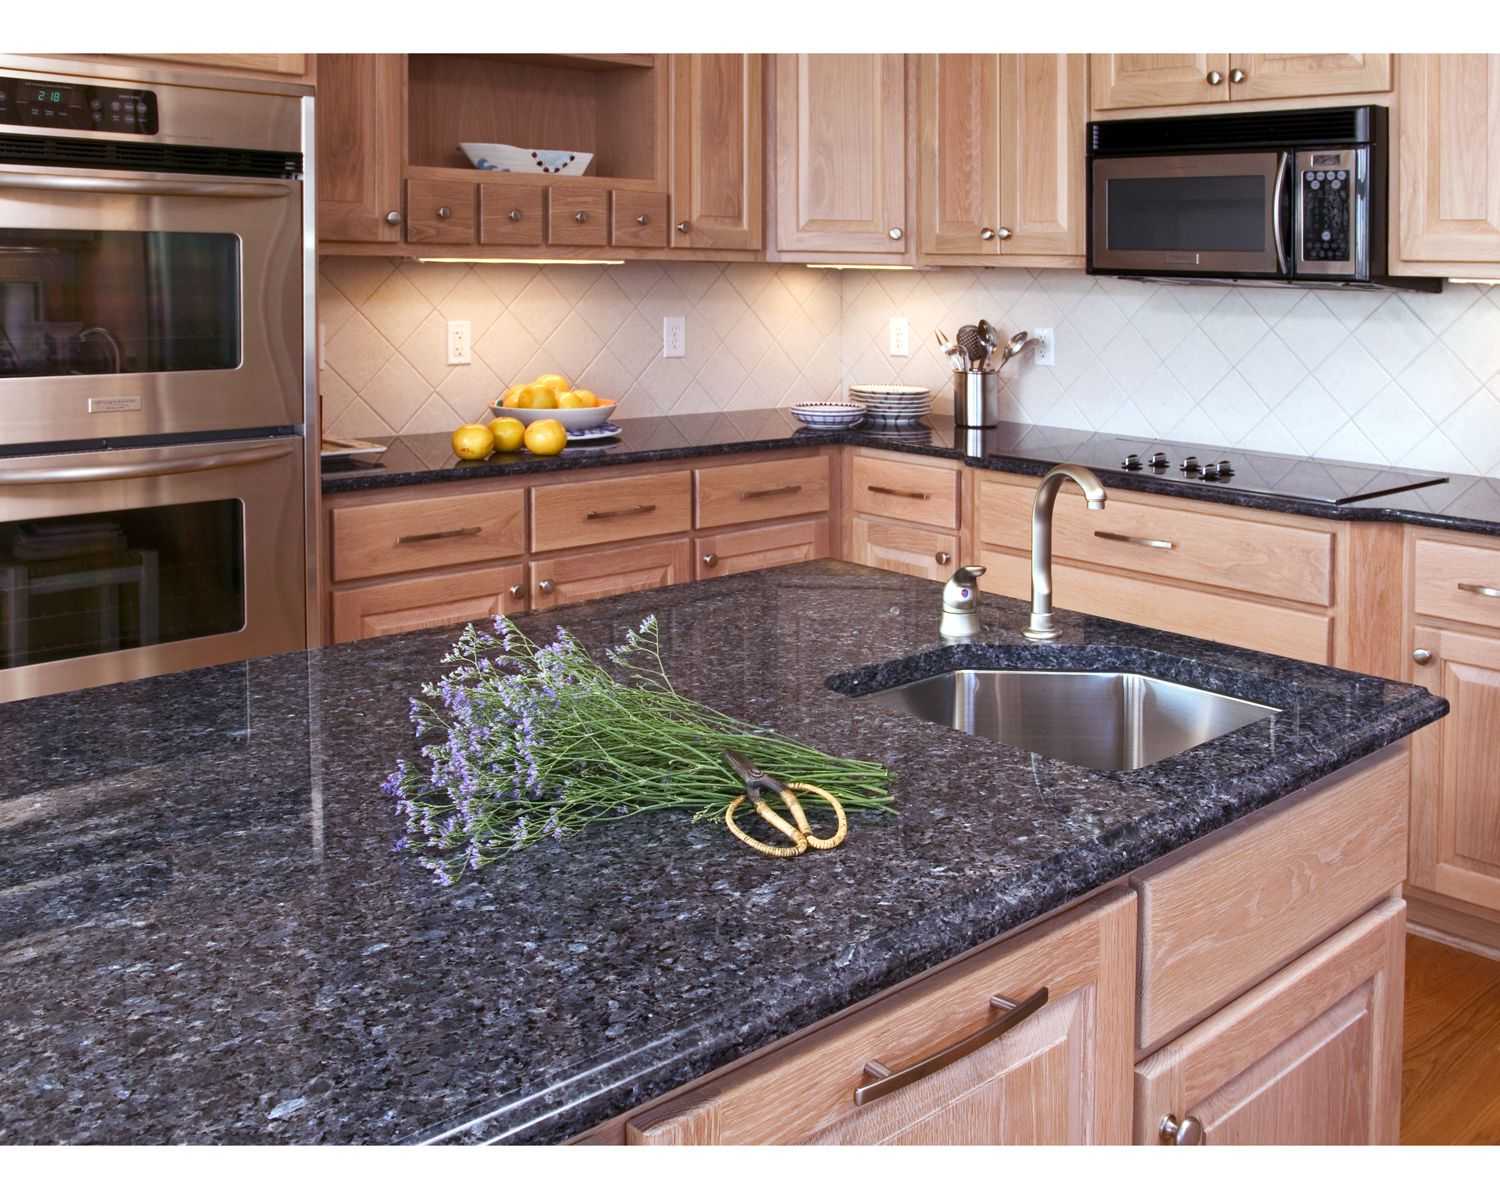 Blue Countertops White Cabinets Countertops Blue Kitchen Countertops Kitchen Idea 39s